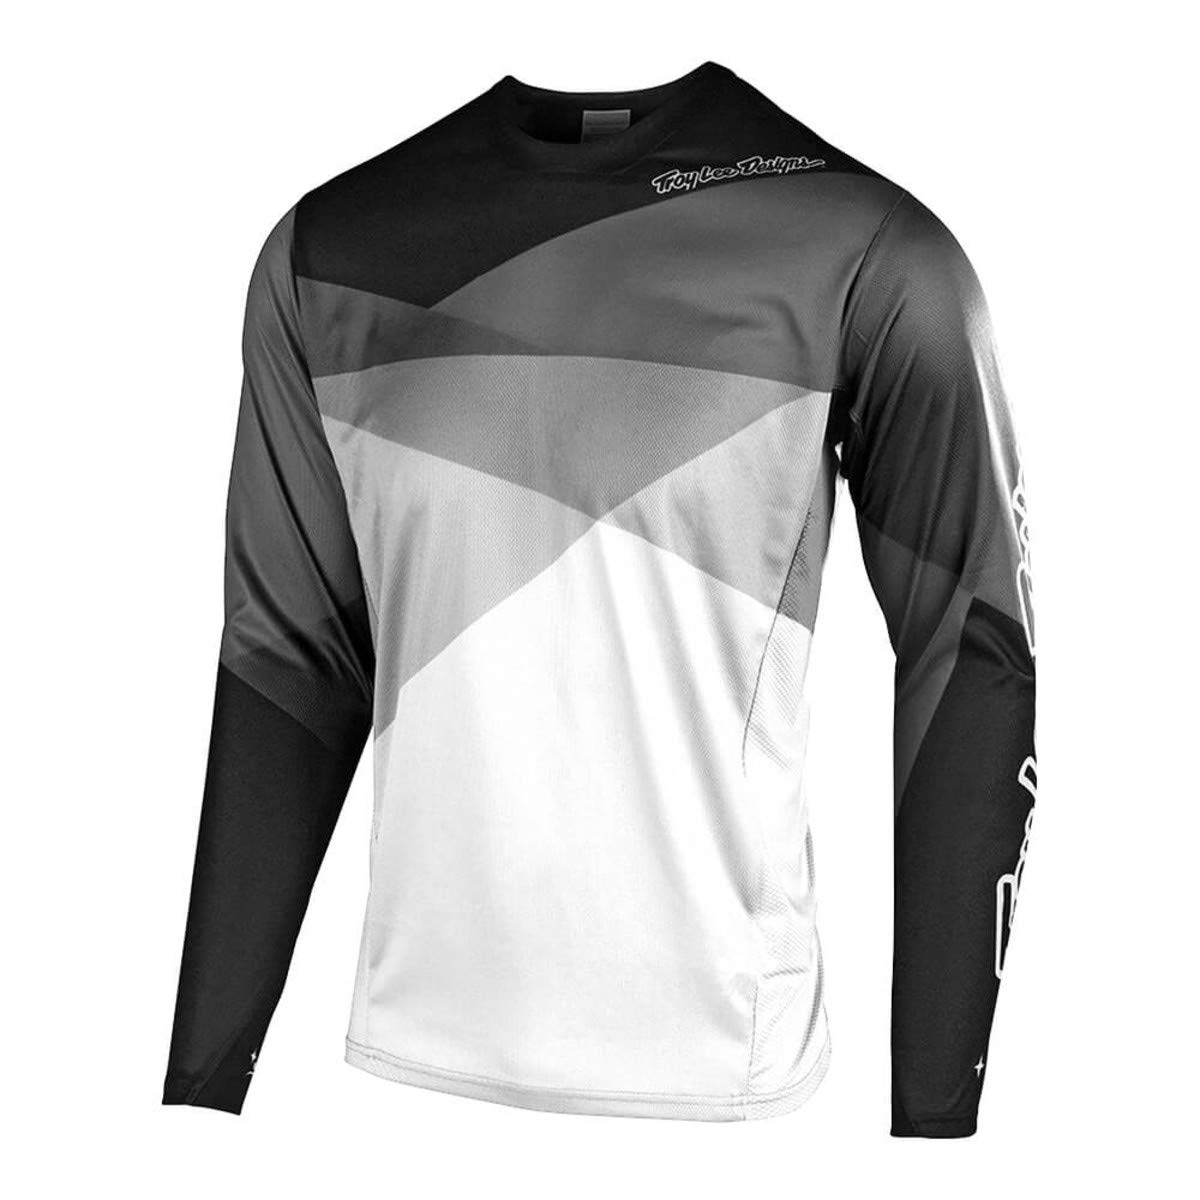 Troy Lee Designs Sprint Jersey - Men's Jet White/Gray, S